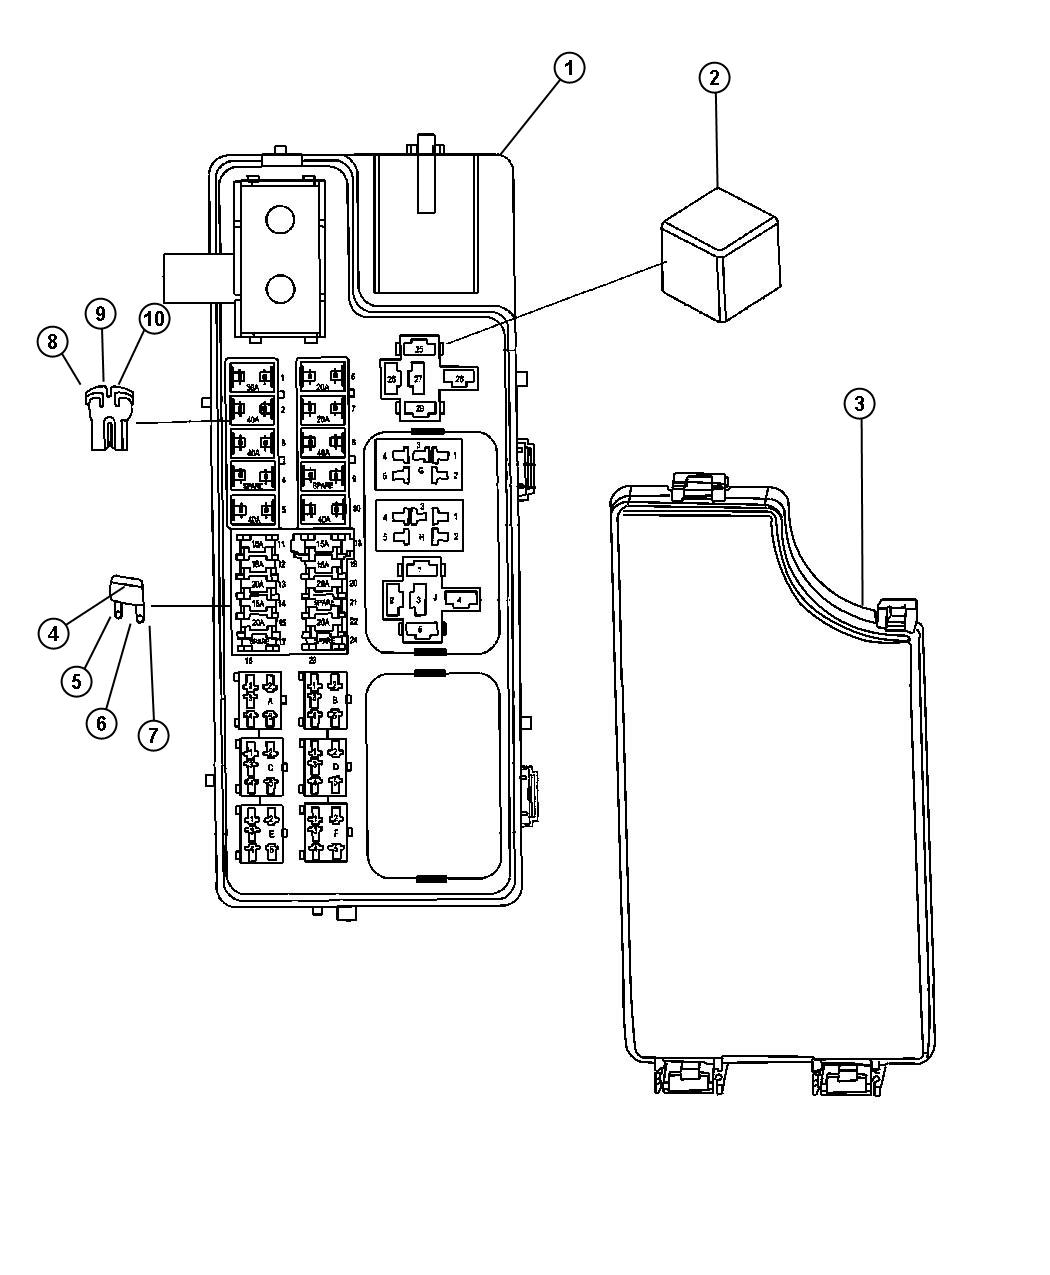 2015 chrysler 200 interior fuse box diagram